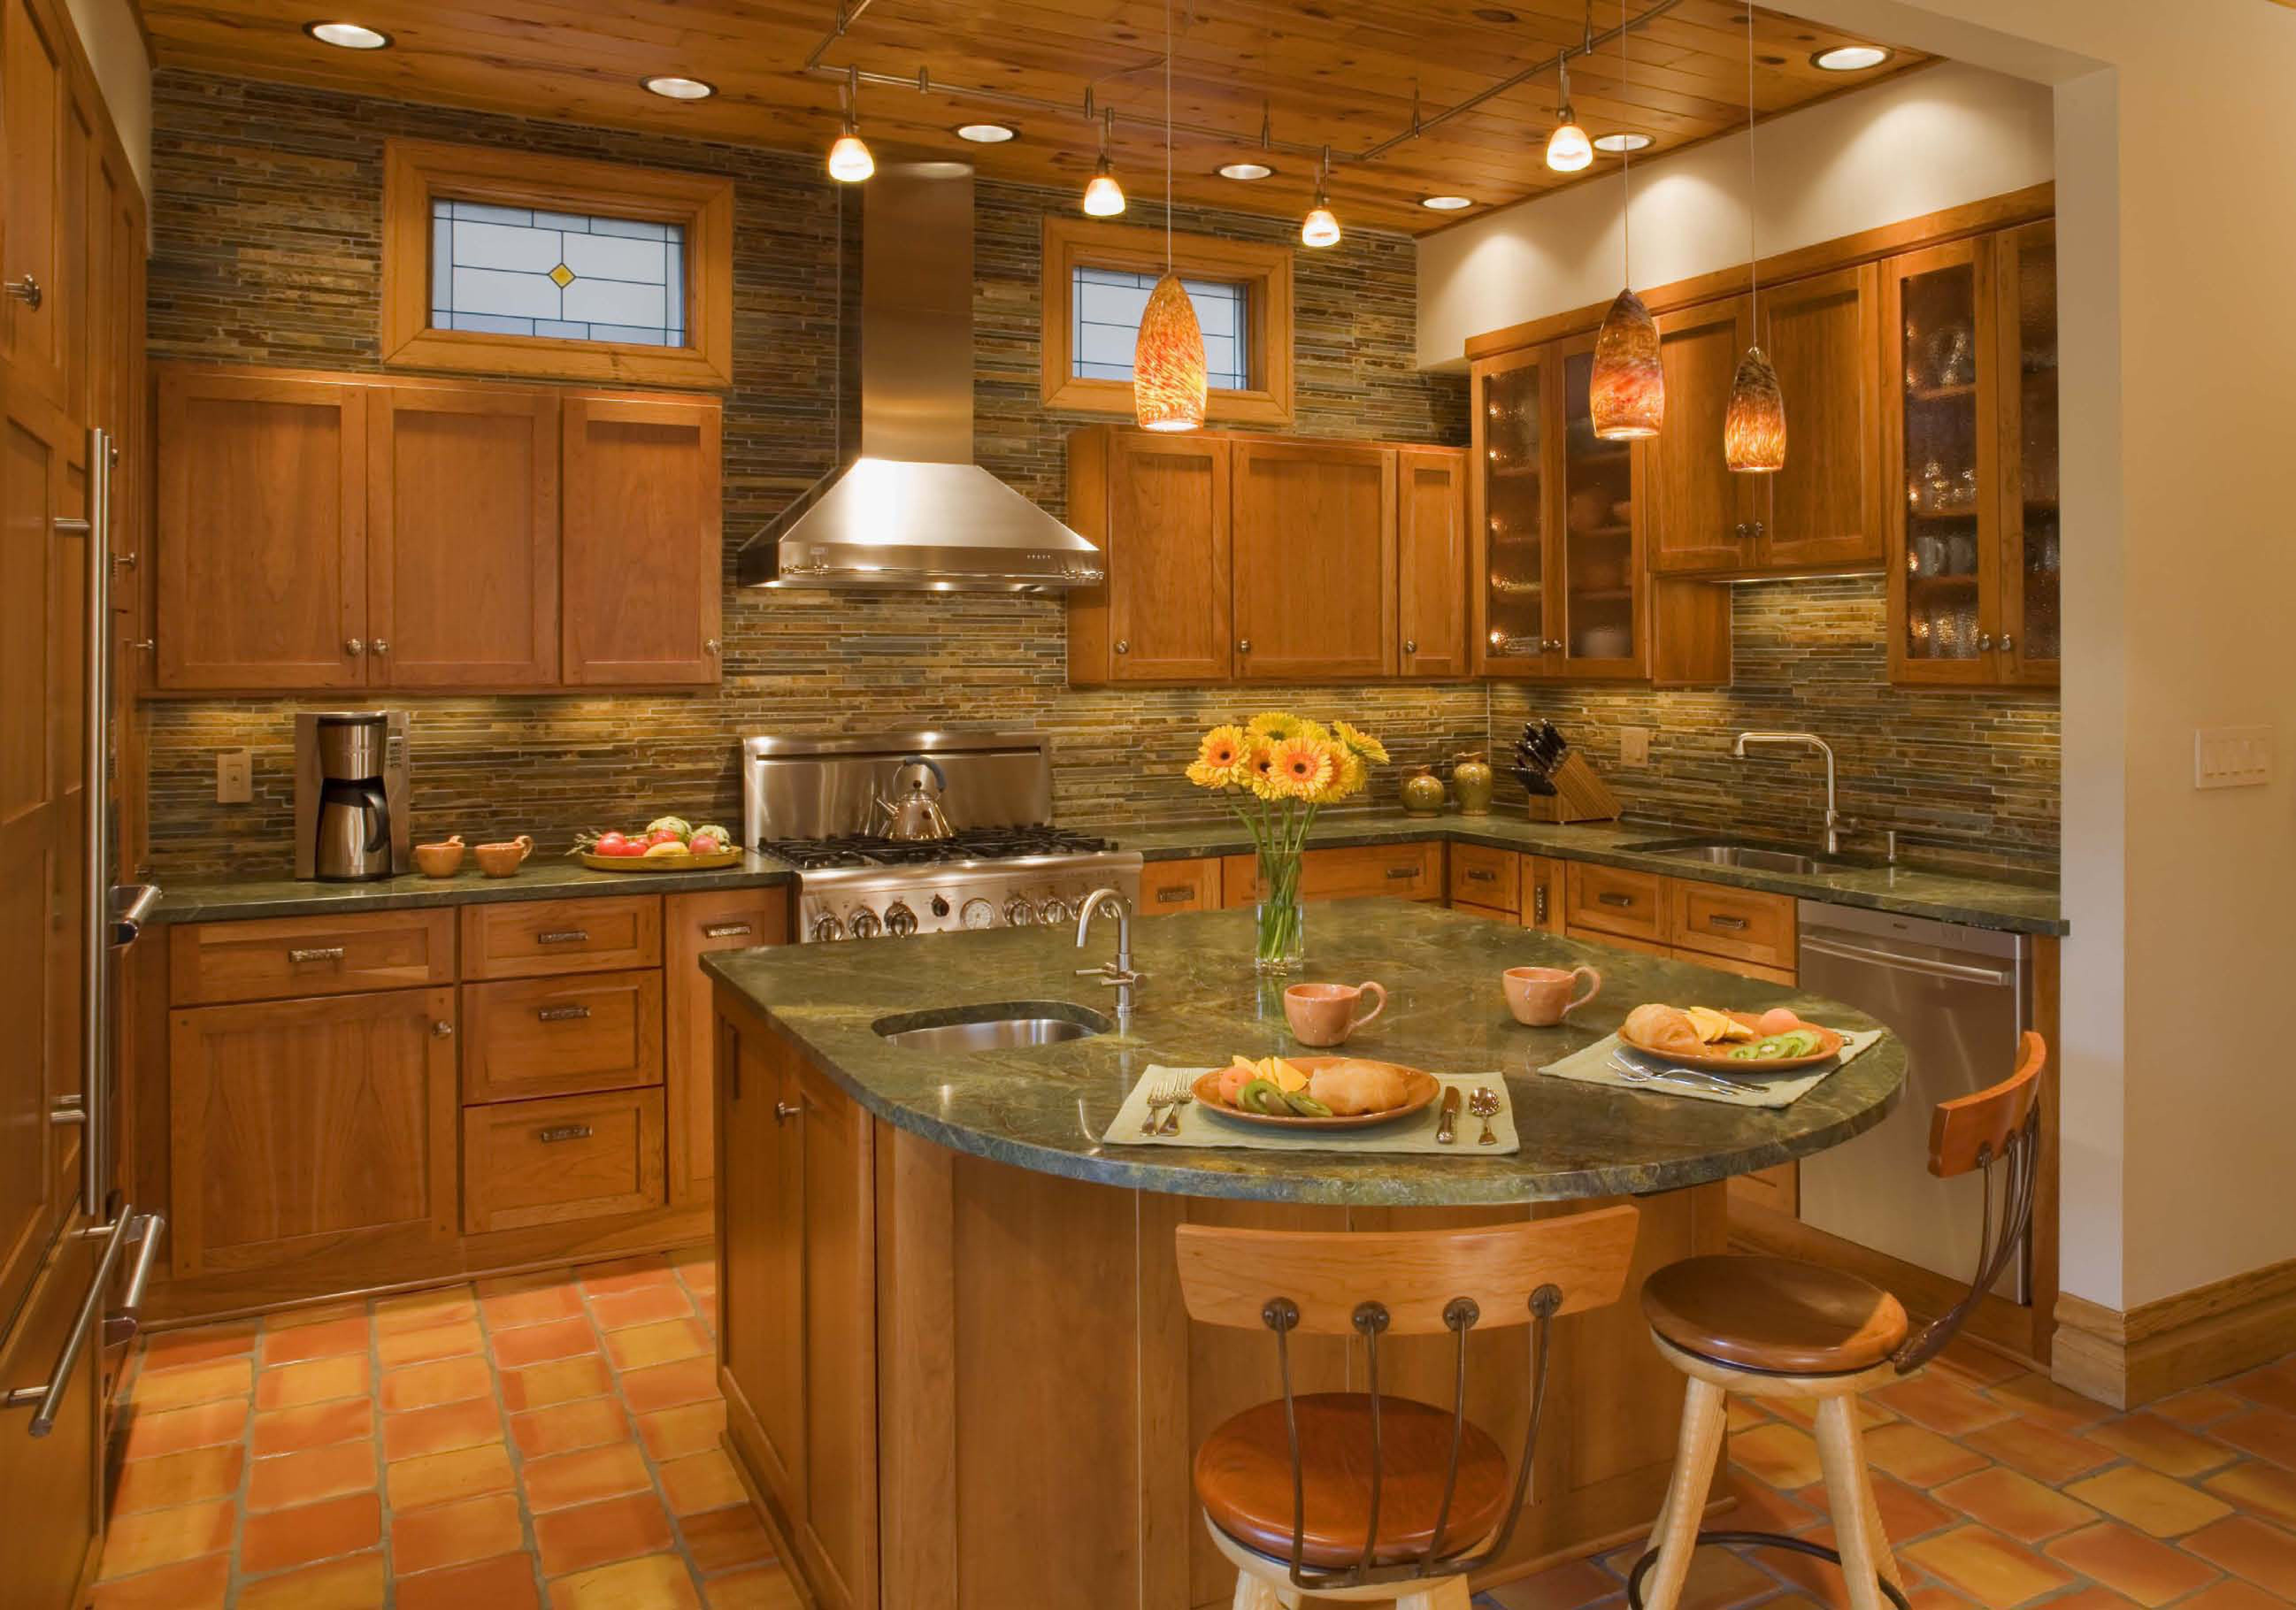 A Well Island Lighting and Islands On. Gourmet Kitchen Ideas. Modern Gourmet Kitchen Designs Ideas — All Home Designs Dream. Gourmet Kitchen Gallery Yahoo Search Results Kitchens